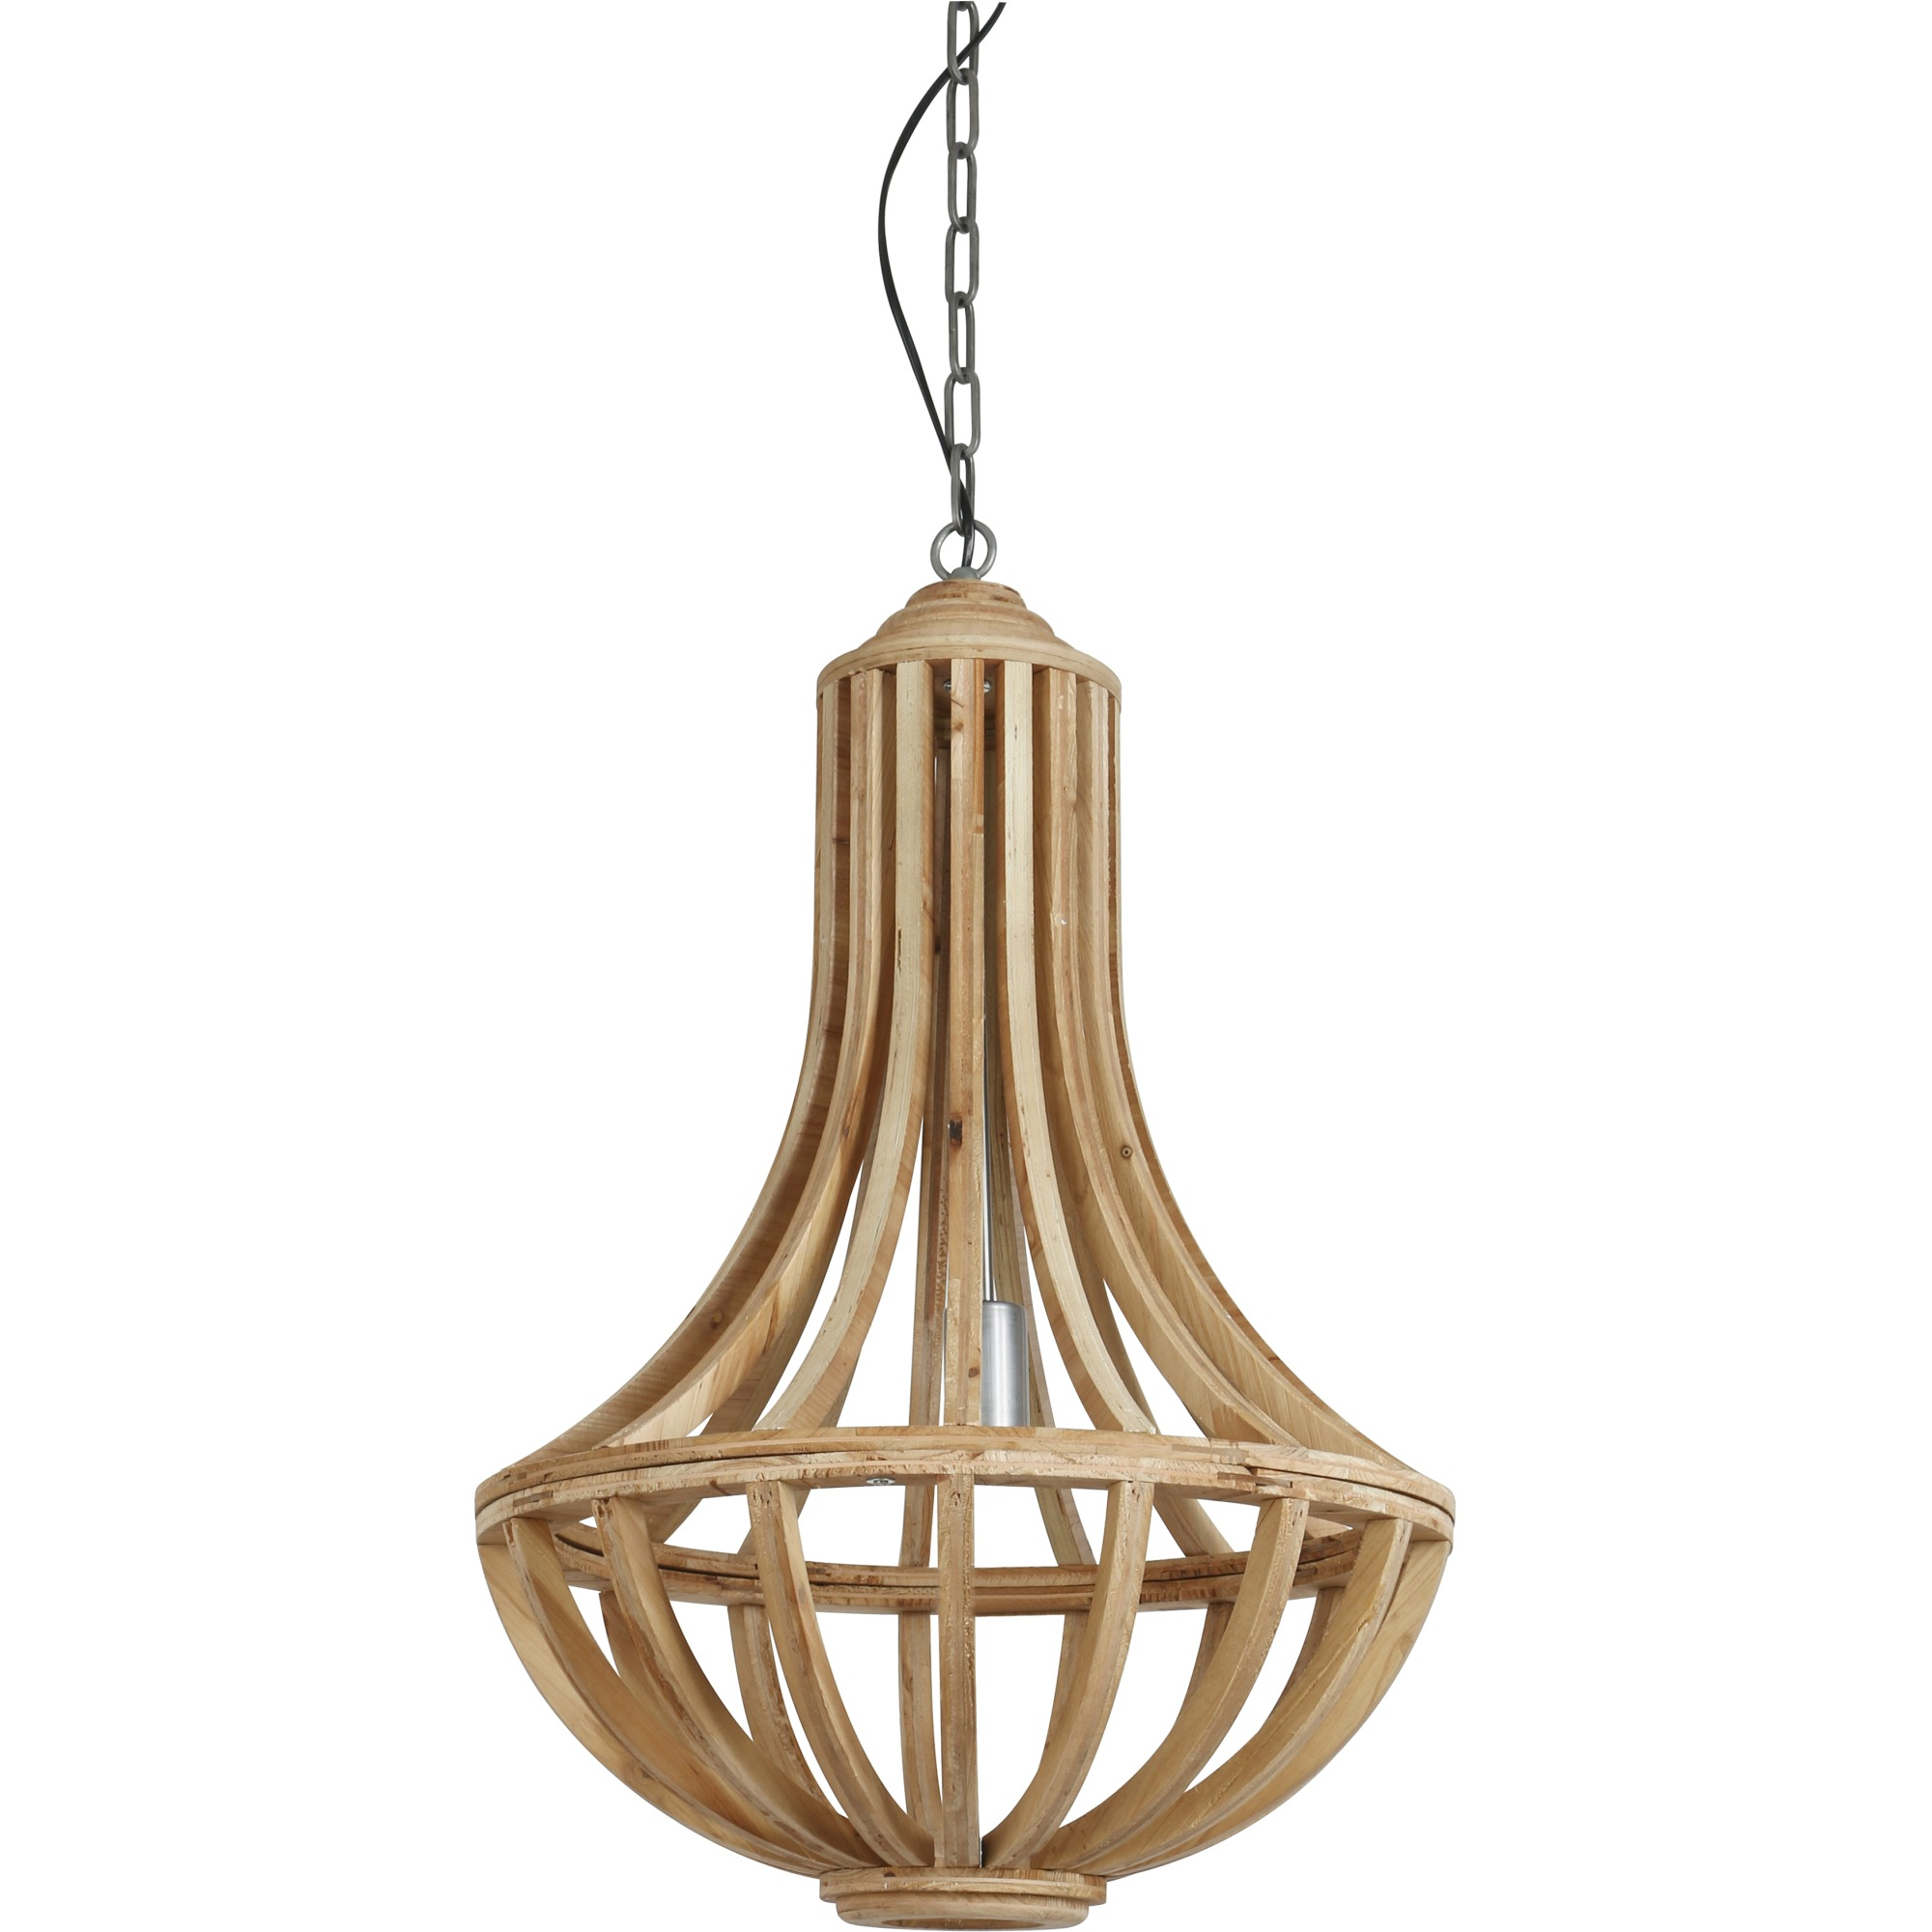 Design lamp hout free awesome danish design lamp with for Design lamp hout